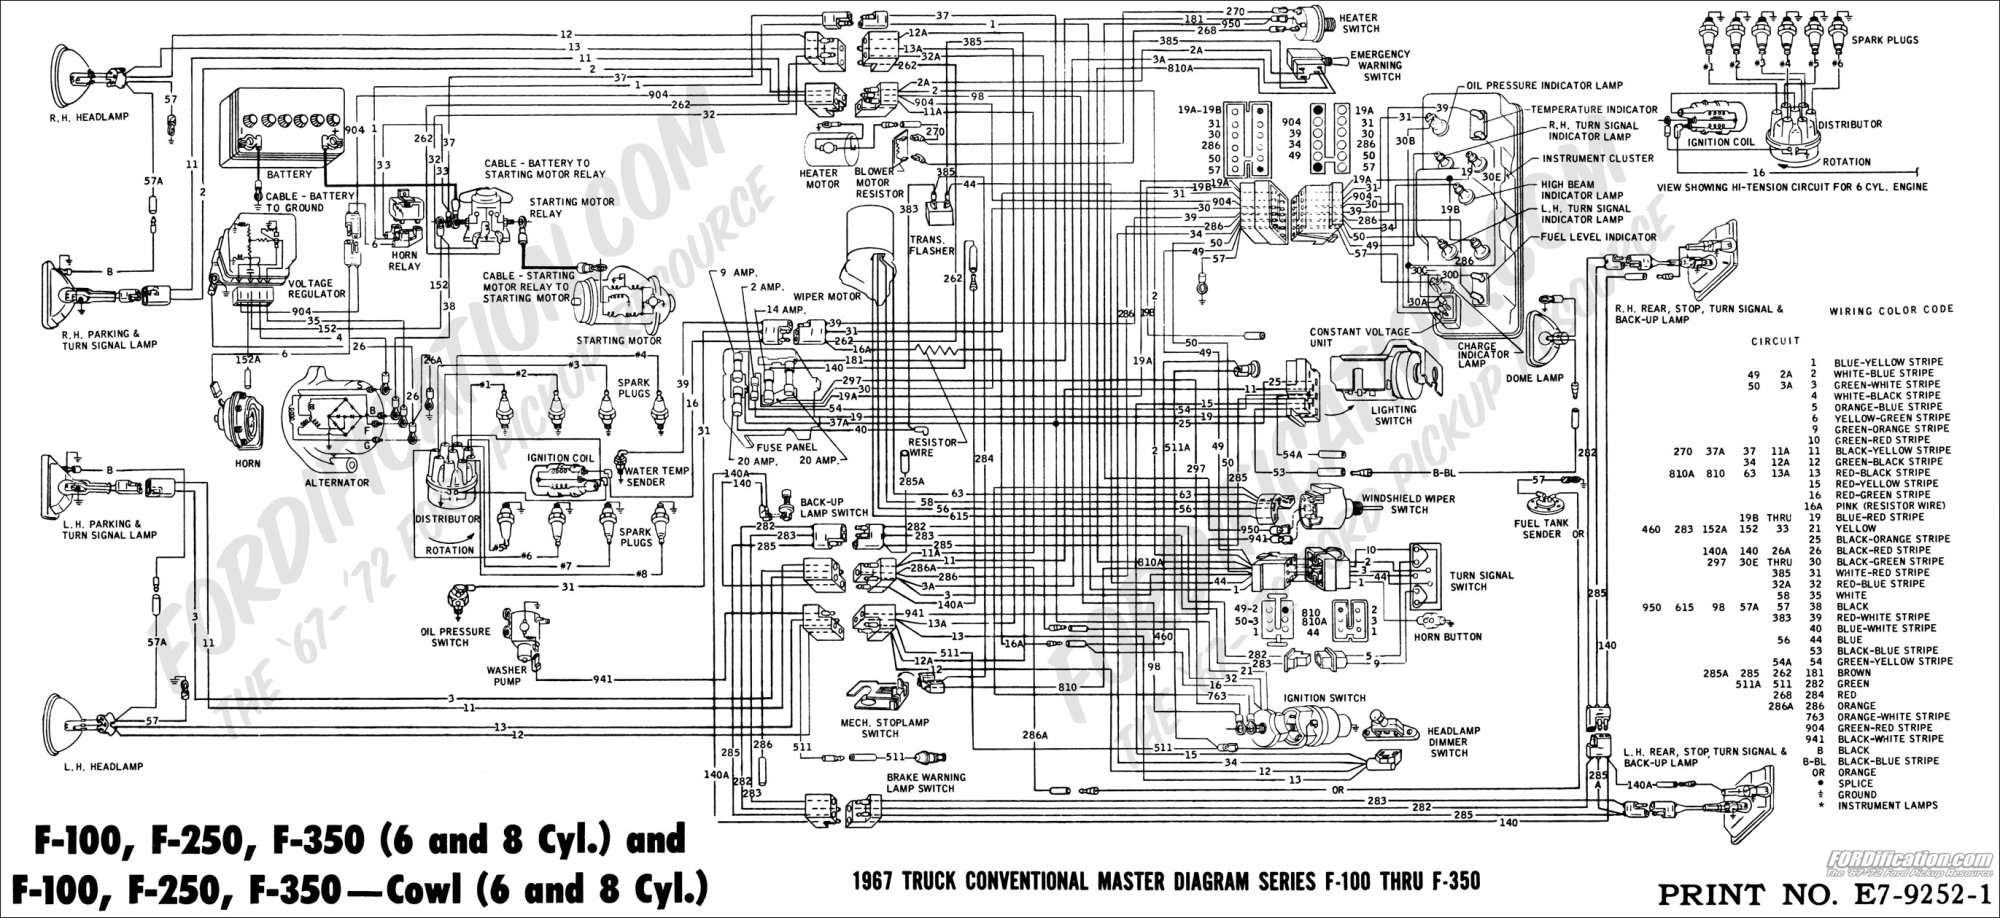 hight resolution of 1992 ford f150 wiring diagrams wiring diagram name 1992 ford e250 wiring diagram